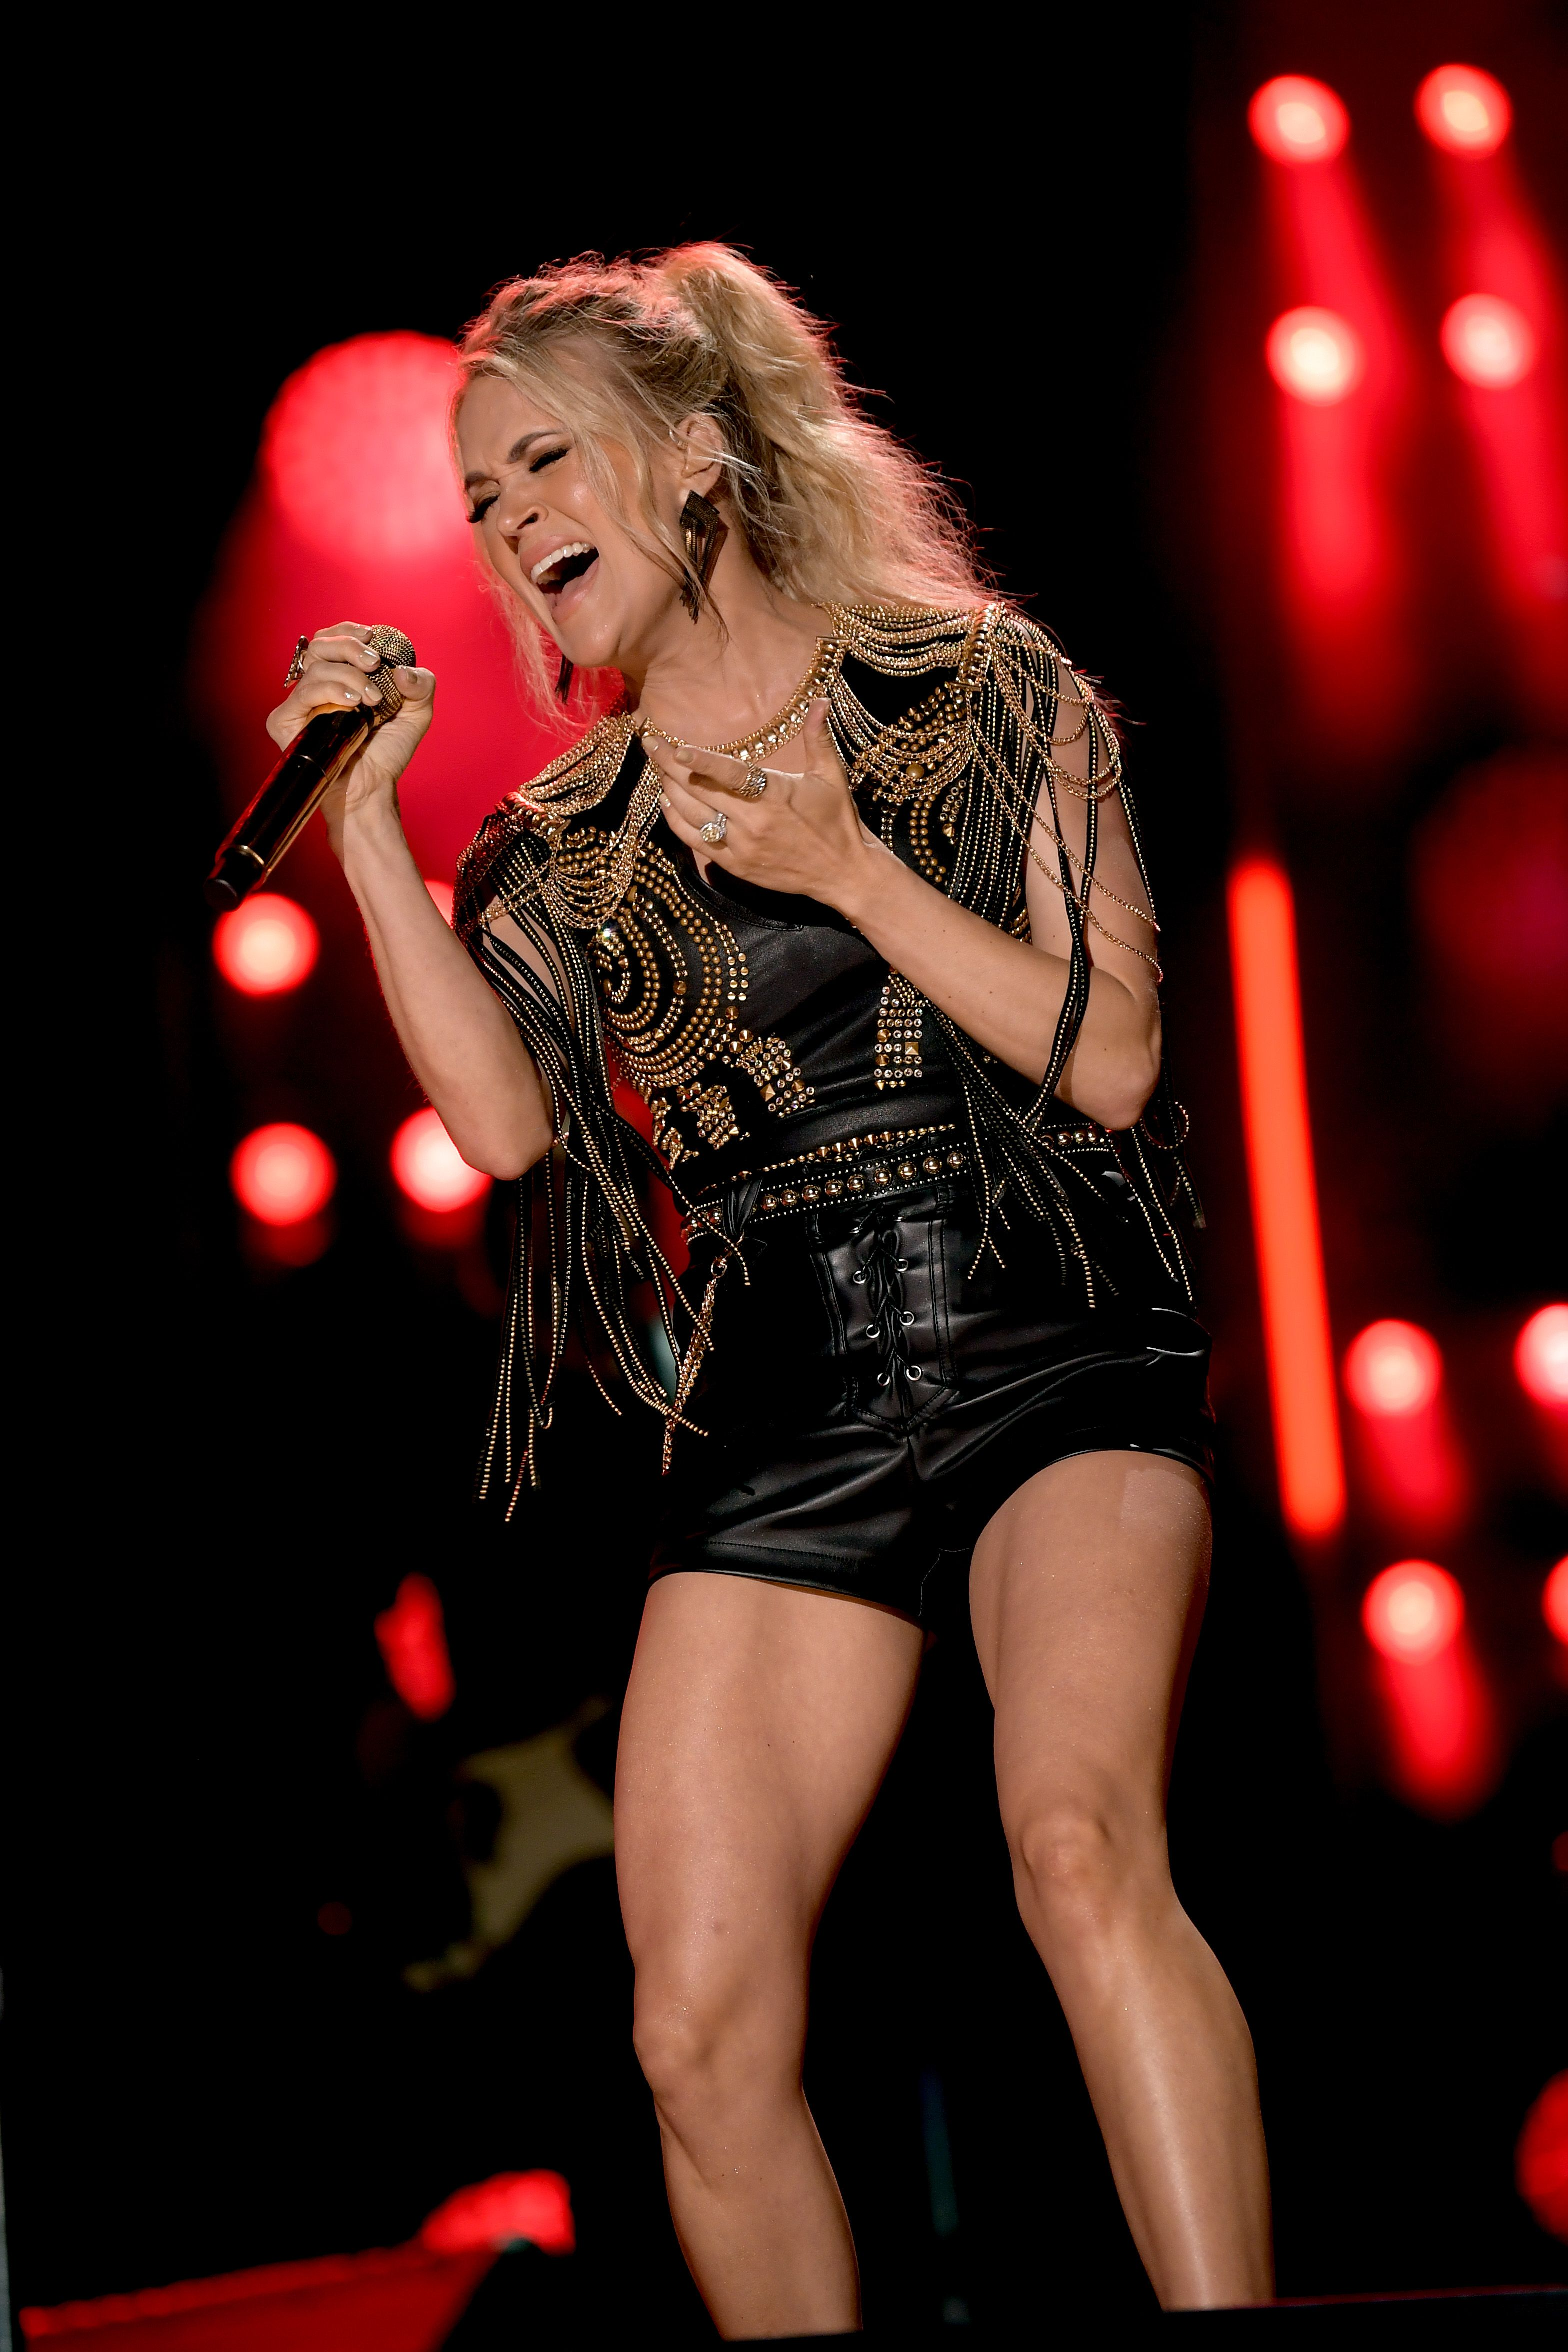 The 15 Best Carrie Underwood Songs Of All Time